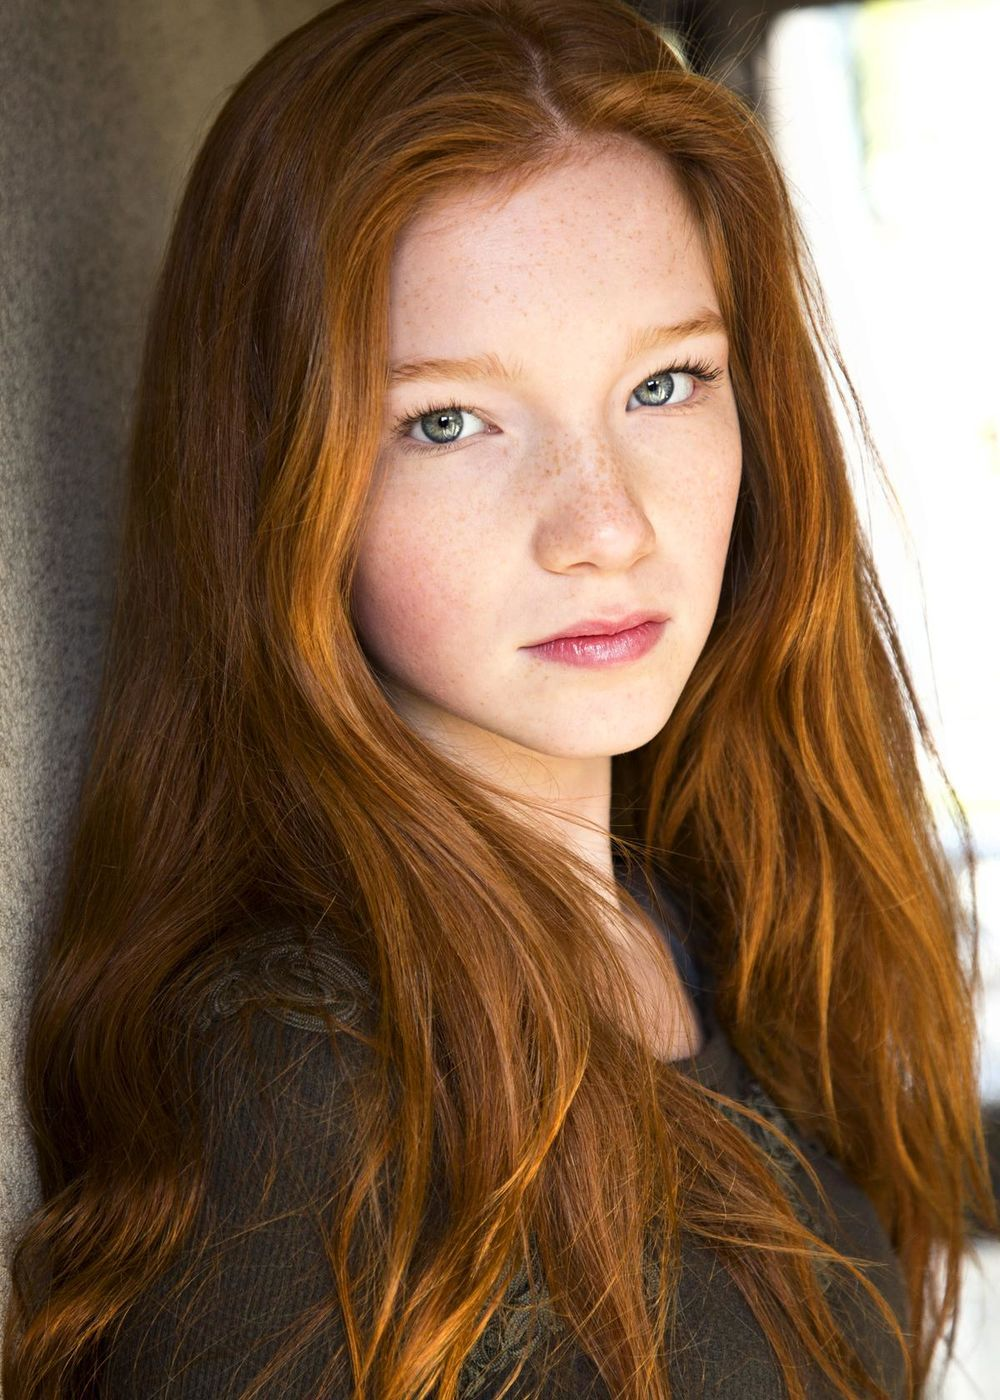 Annalise Basso | Child actresses, Actresses and Redheads